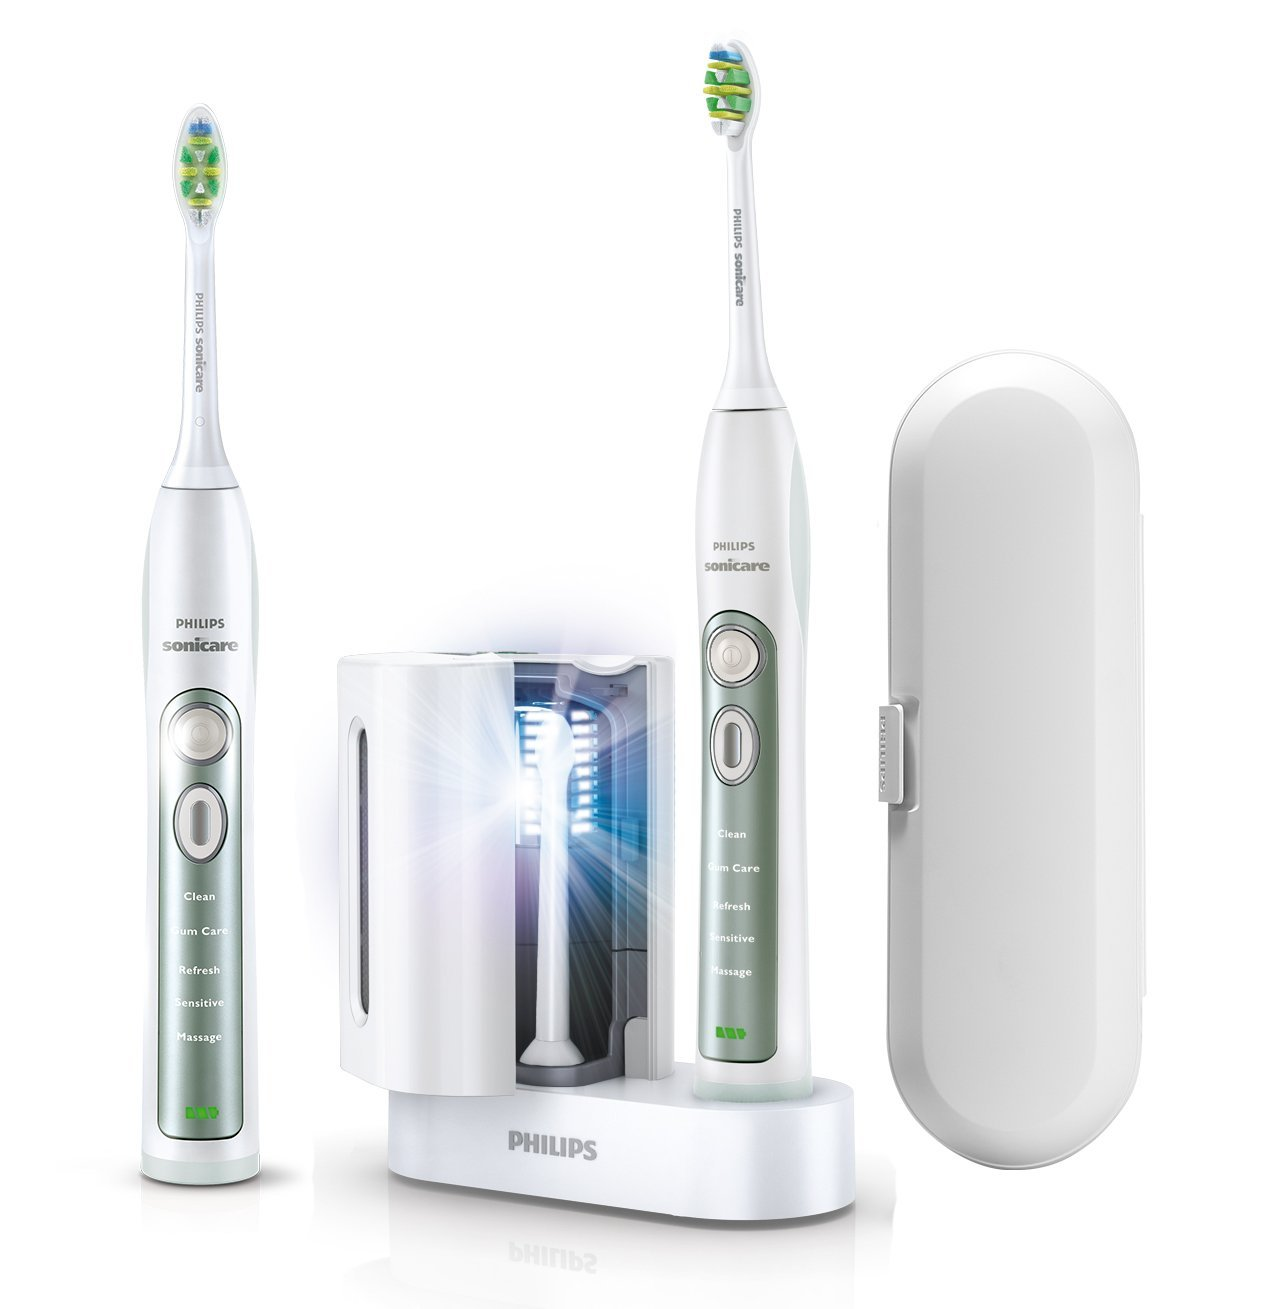 Philips Sonicare amazon